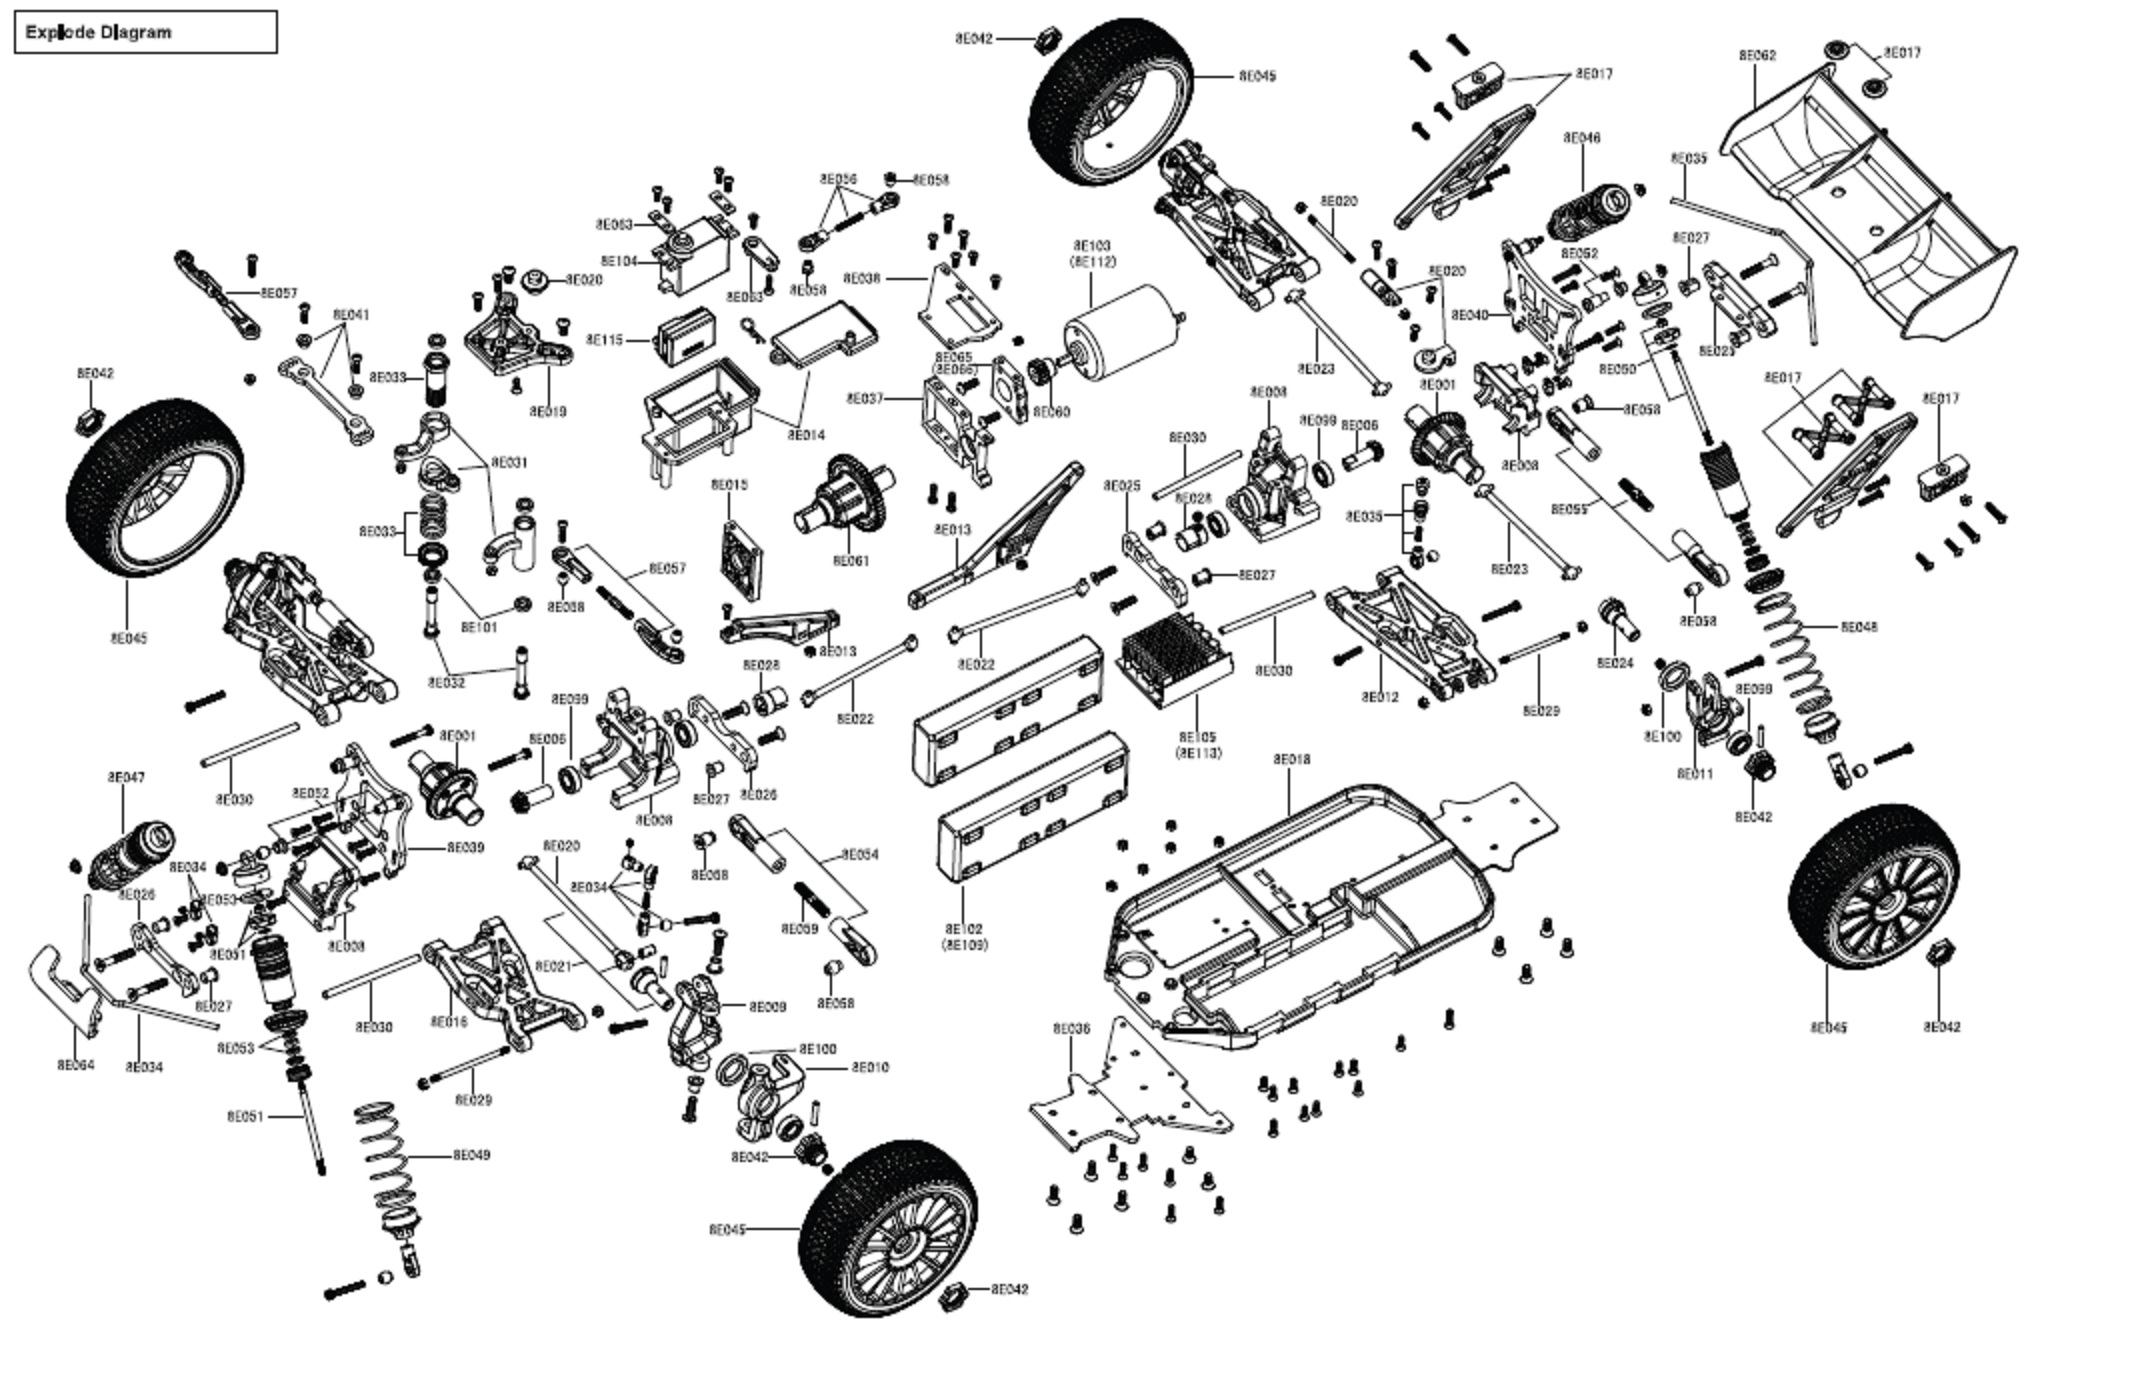 1992 club car ds gas wiring diagram directv swm odu parts